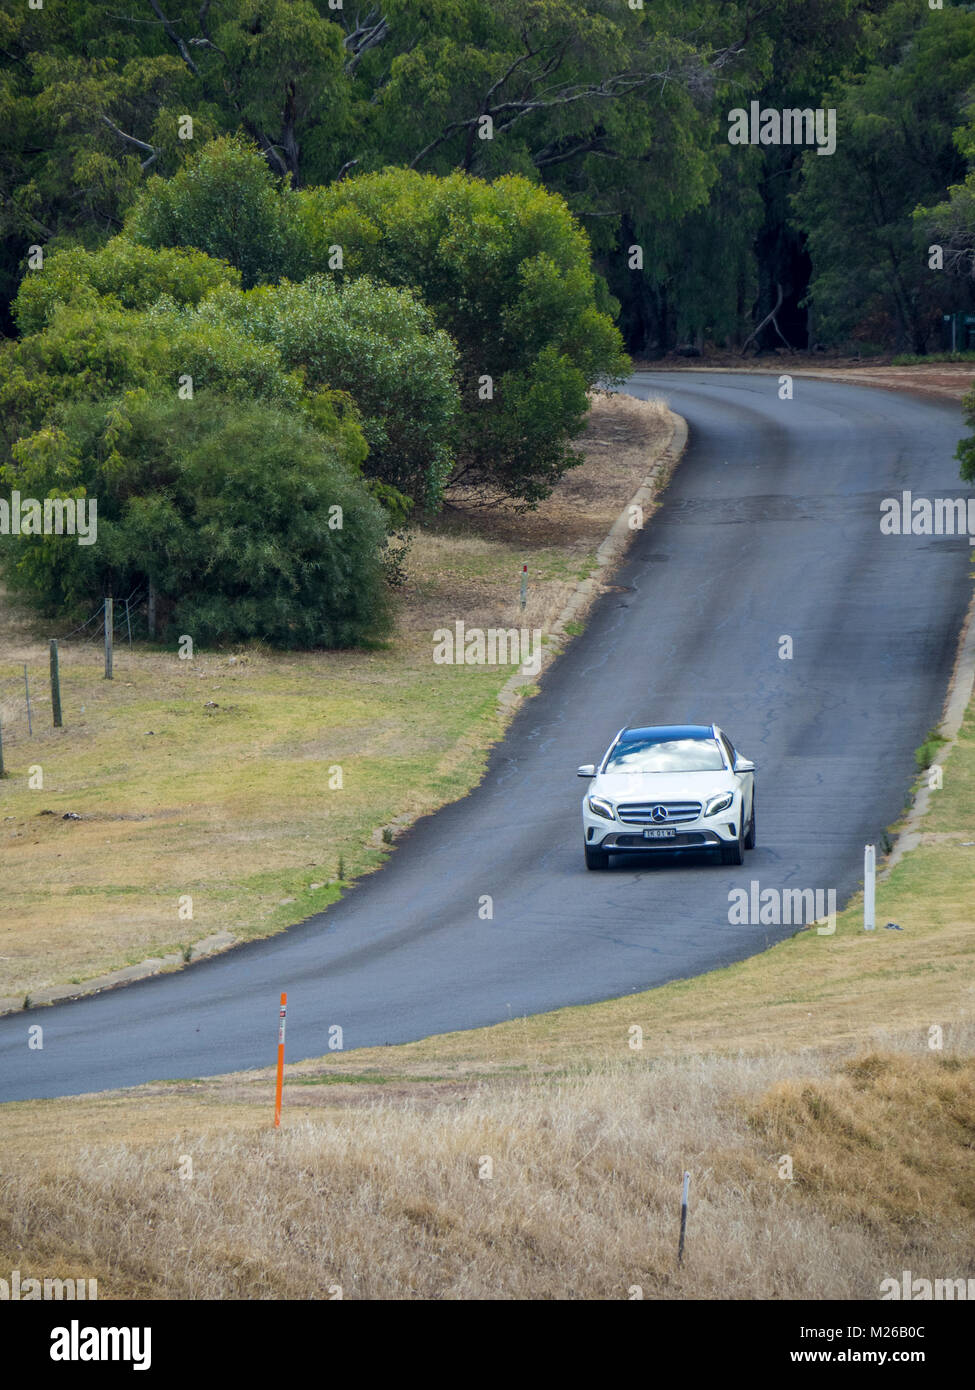 A white Mercedes GLA 180 vehicle driving on a country road in Margaret River, WA, Australia. - Stock Image